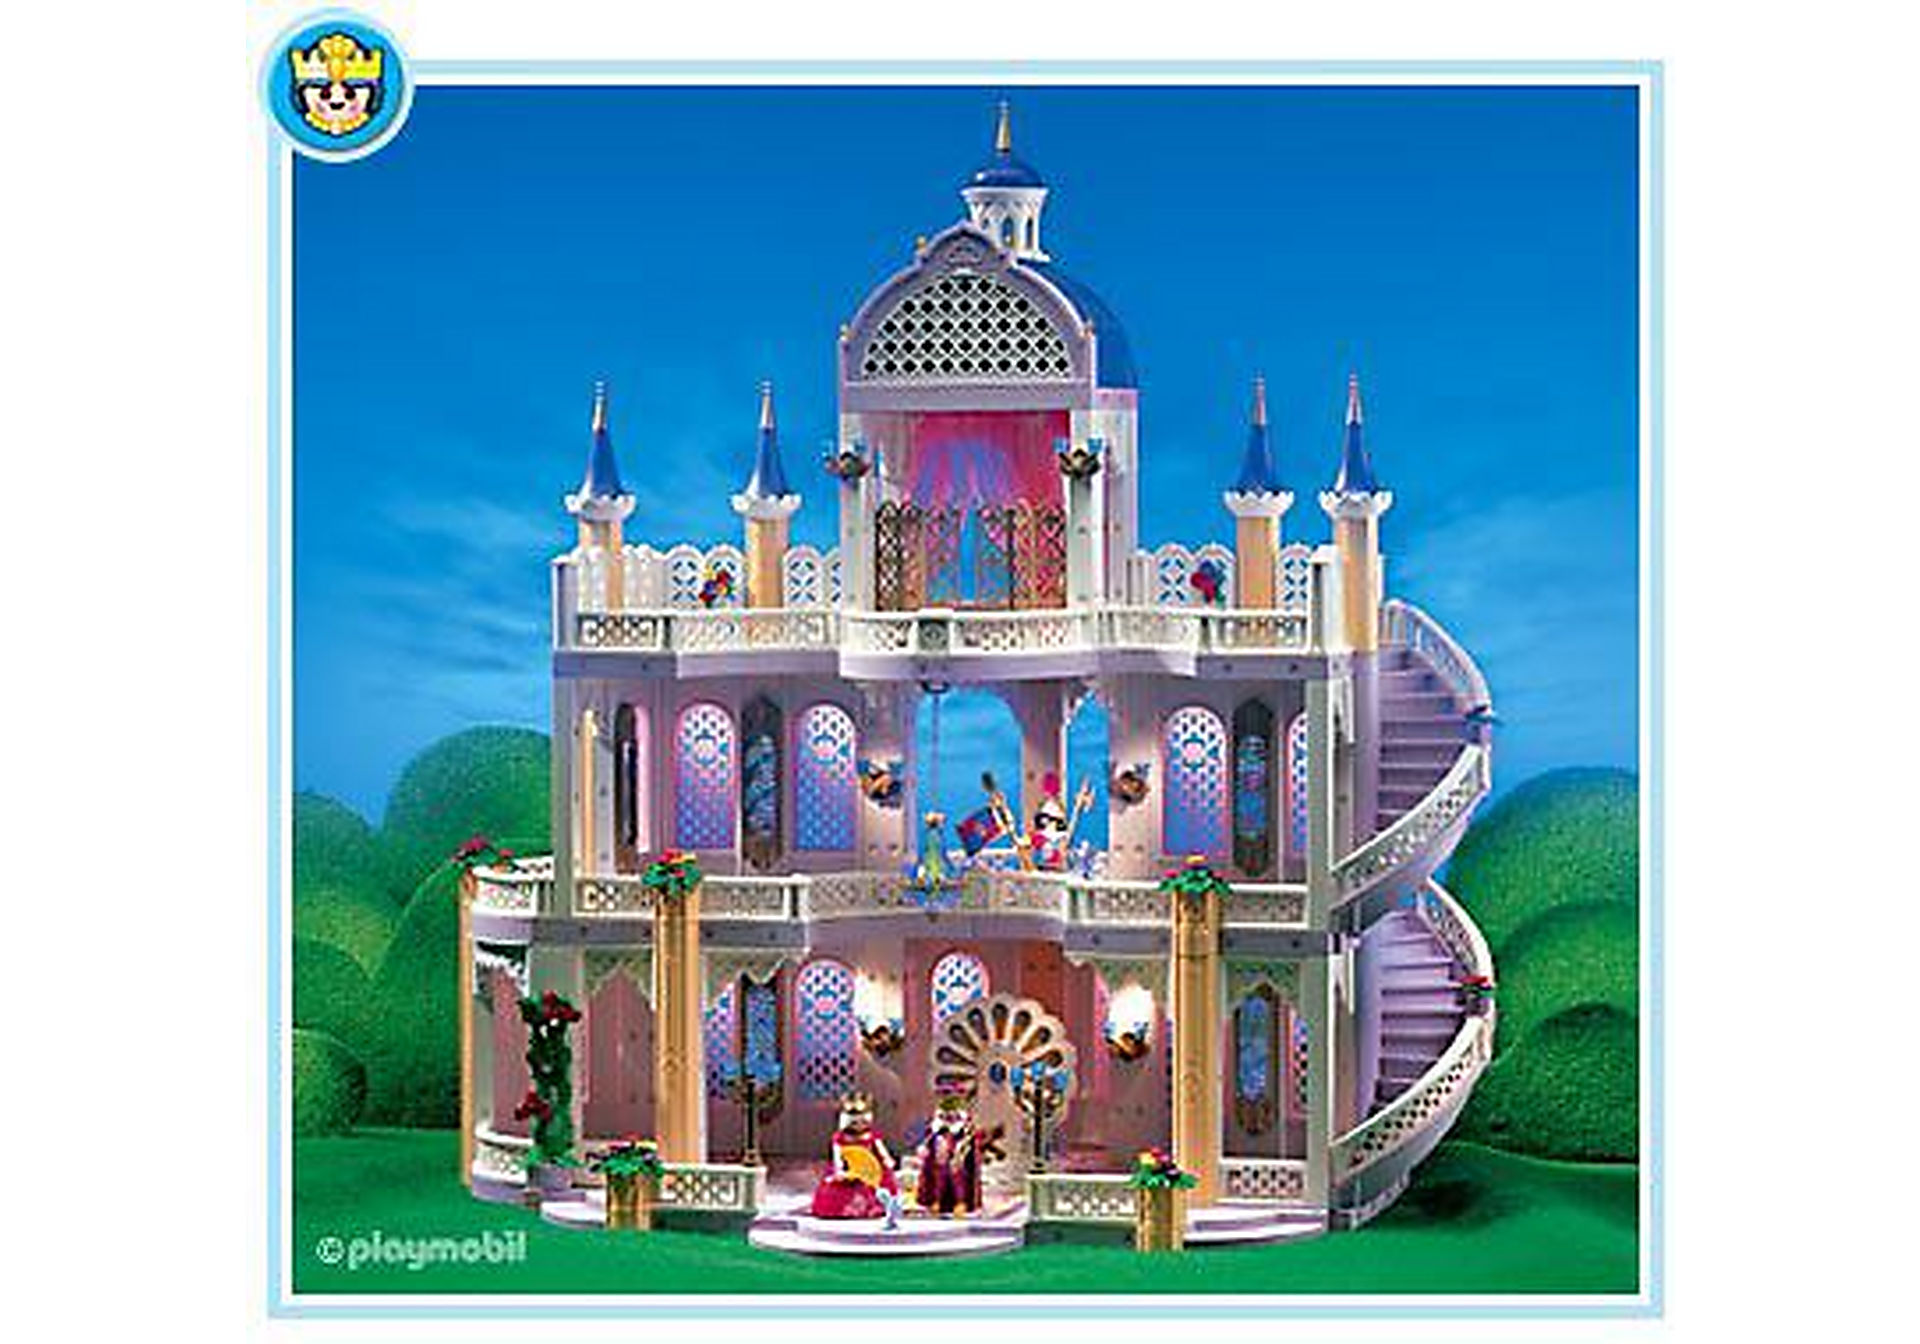 http://media.playmobil.com/i/playmobil/3019-A_product_detail/Traumschloss